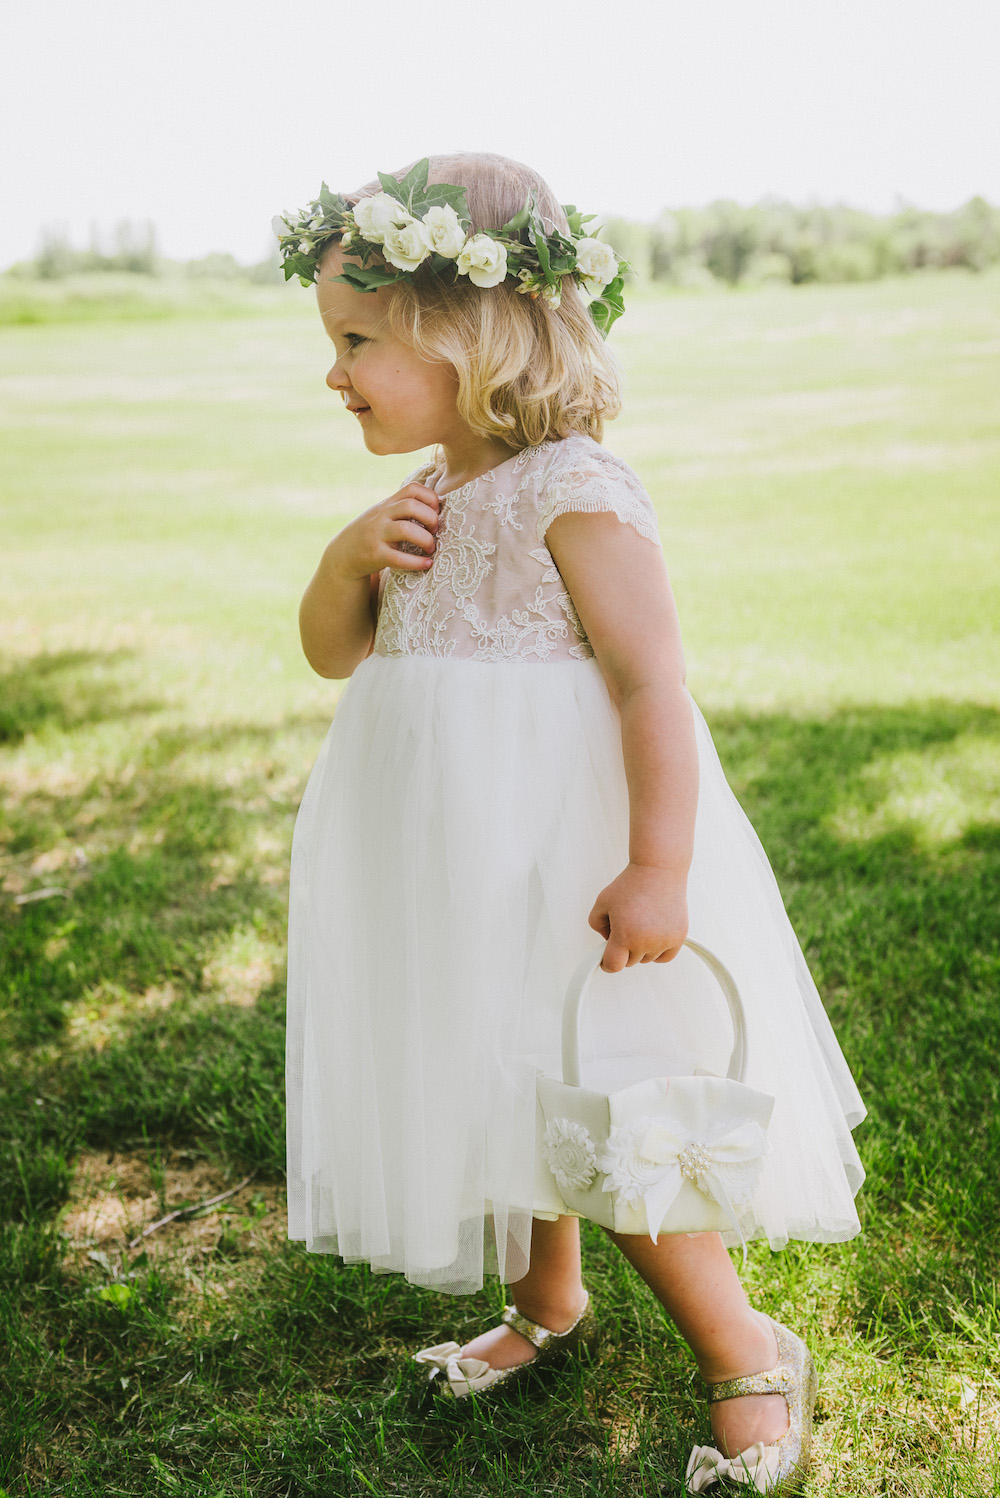 Flower Girl Flower Crown - Wedding Ideas